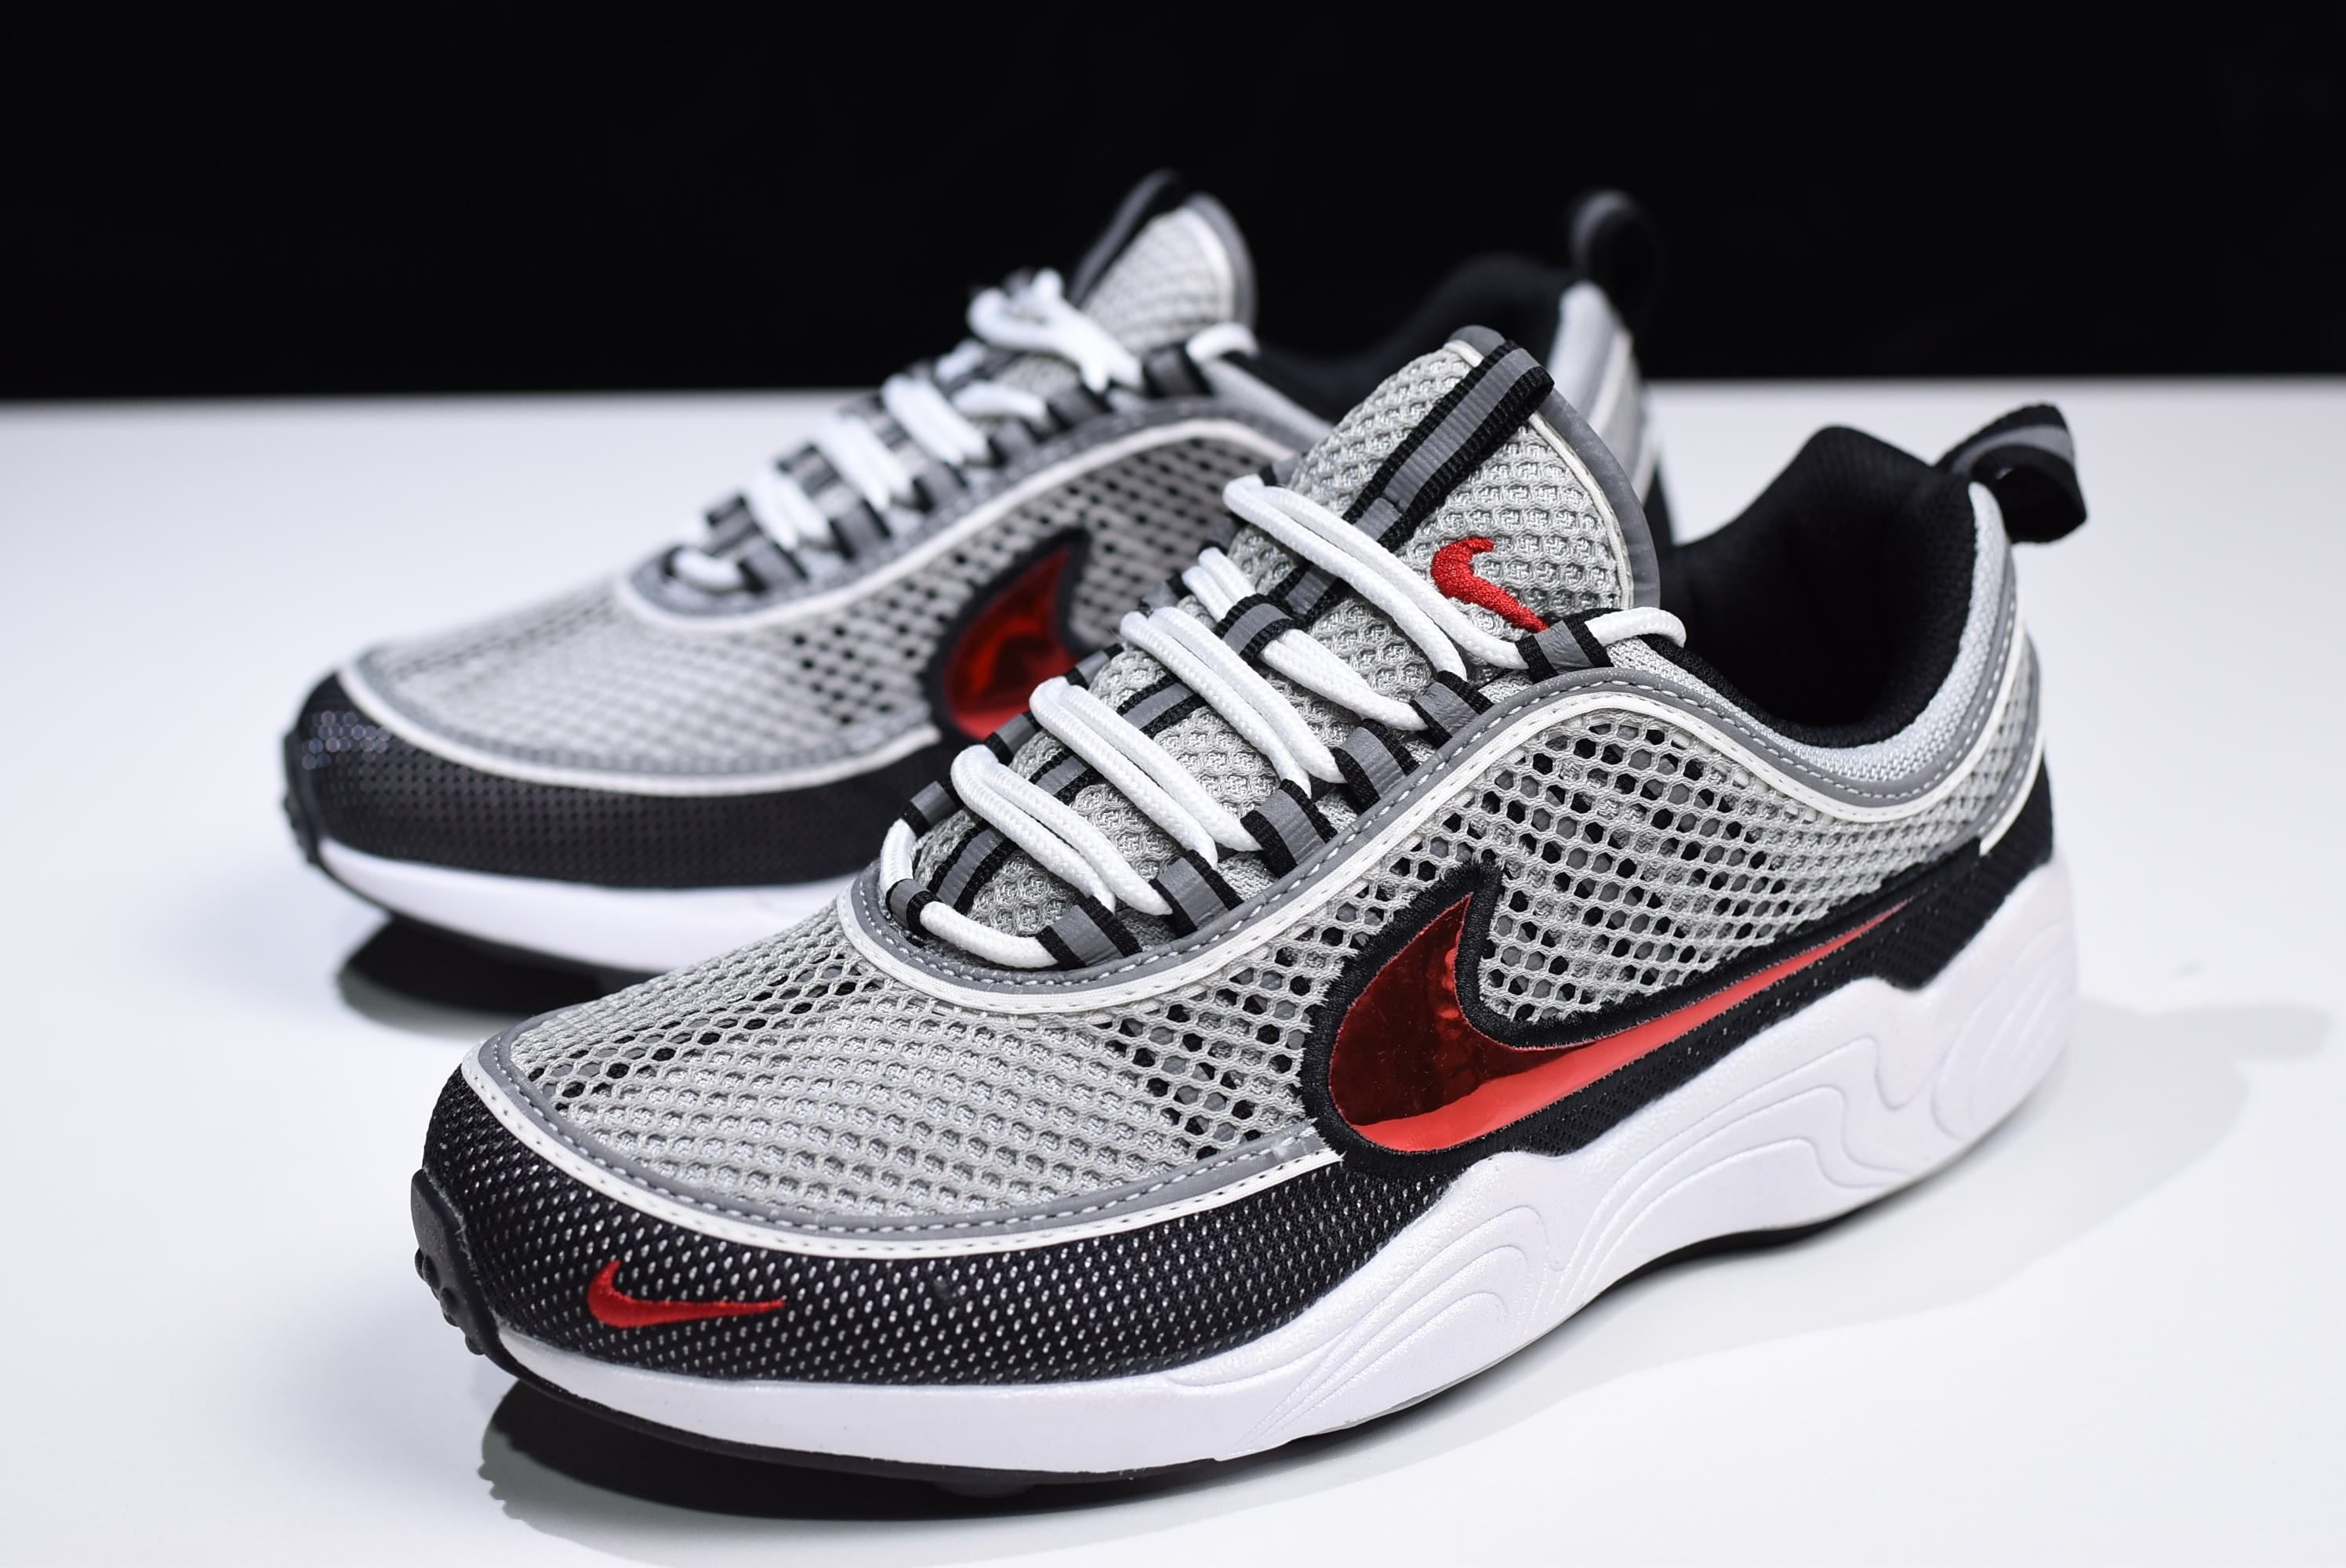 meet 00c77 45e4e Nike Air Zoom Spiridon  16  849776-001